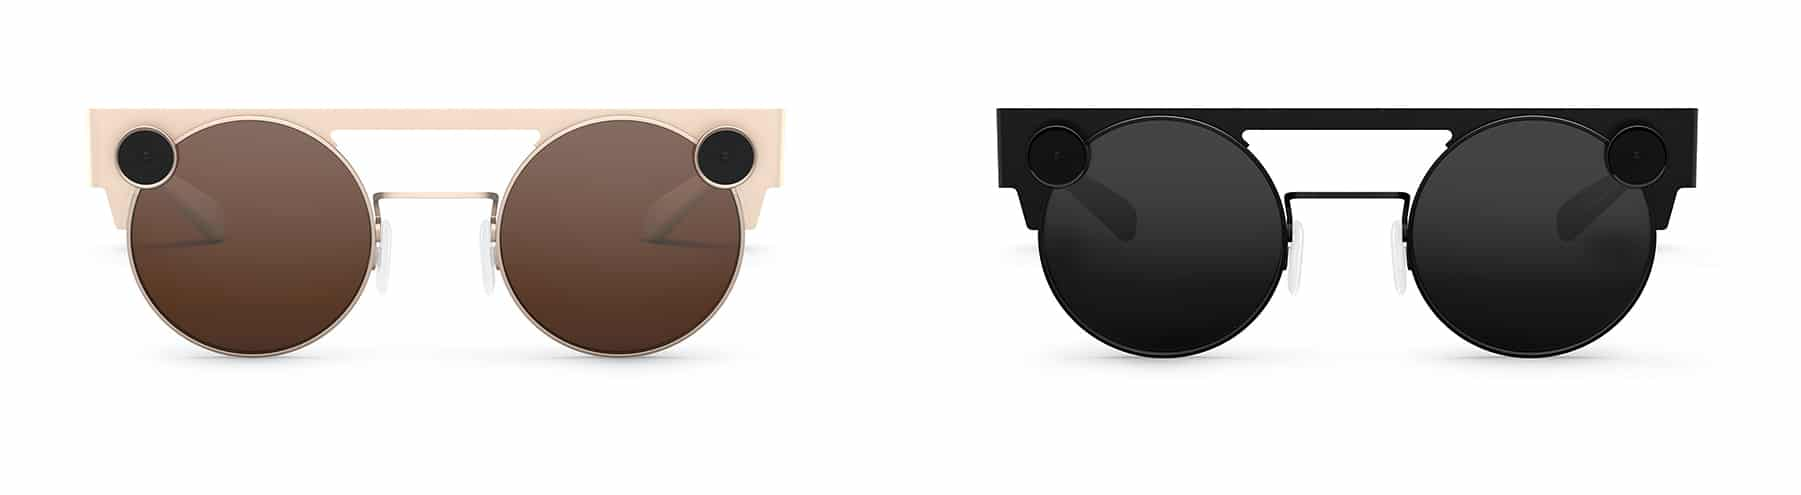 Snapchat announces the new Spectacles 3 in Saudi Arabia